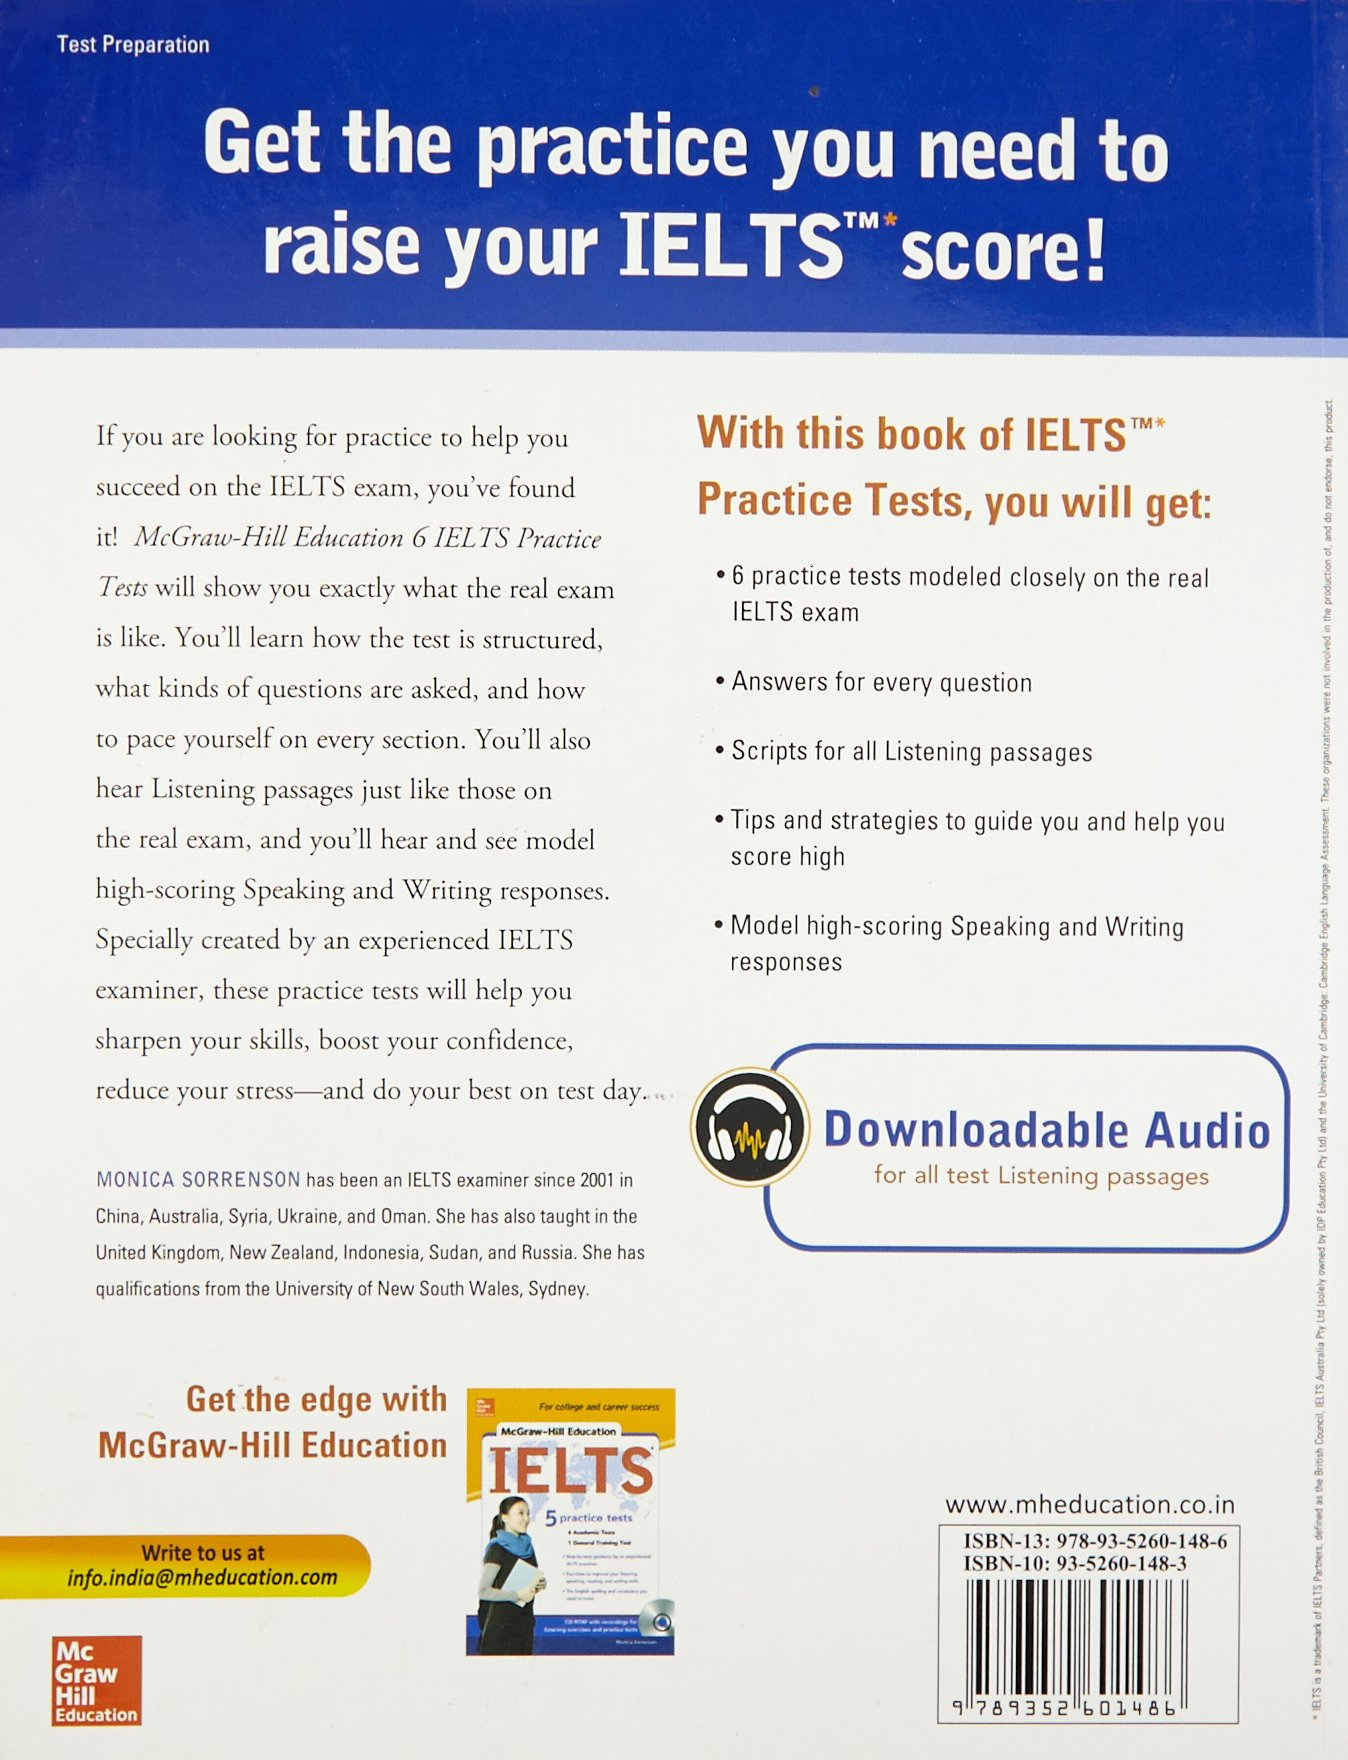 Buy 6 IELTS Practice Tests Book Online at Low Prices in